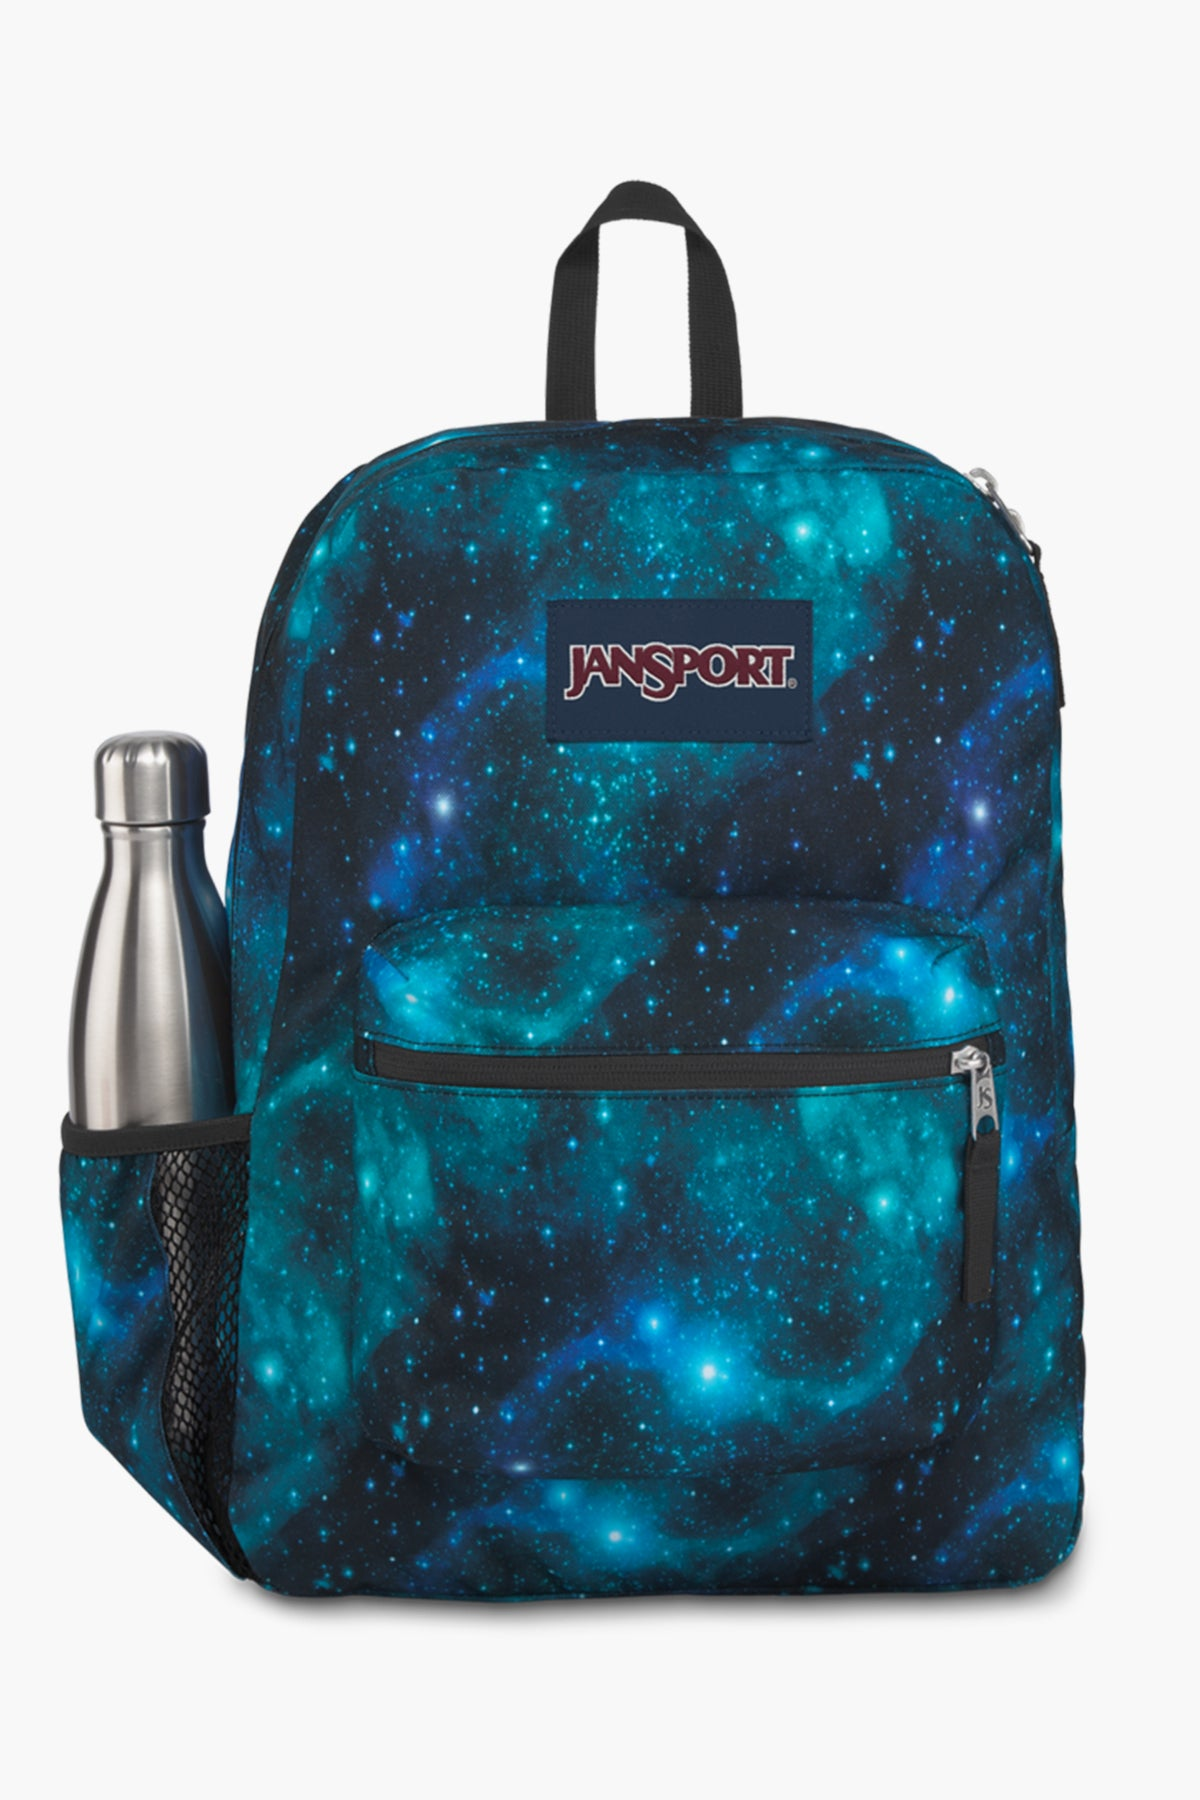 JanSport Cross Town Kids Backpack - Galaxy